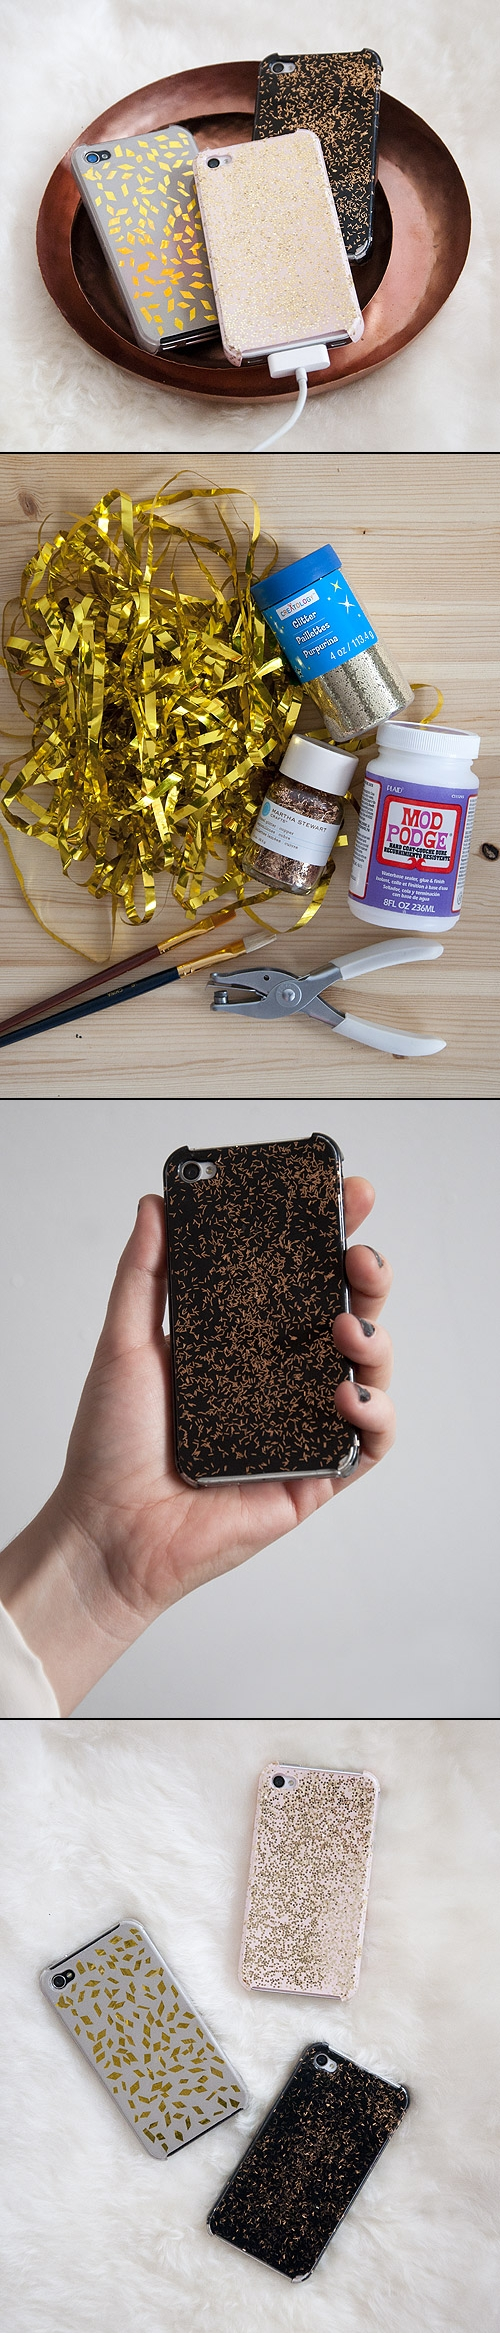 diy iphone cover homemade is my name pinterest handy. Black Bedroom Furniture Sets. Home Design Ideas